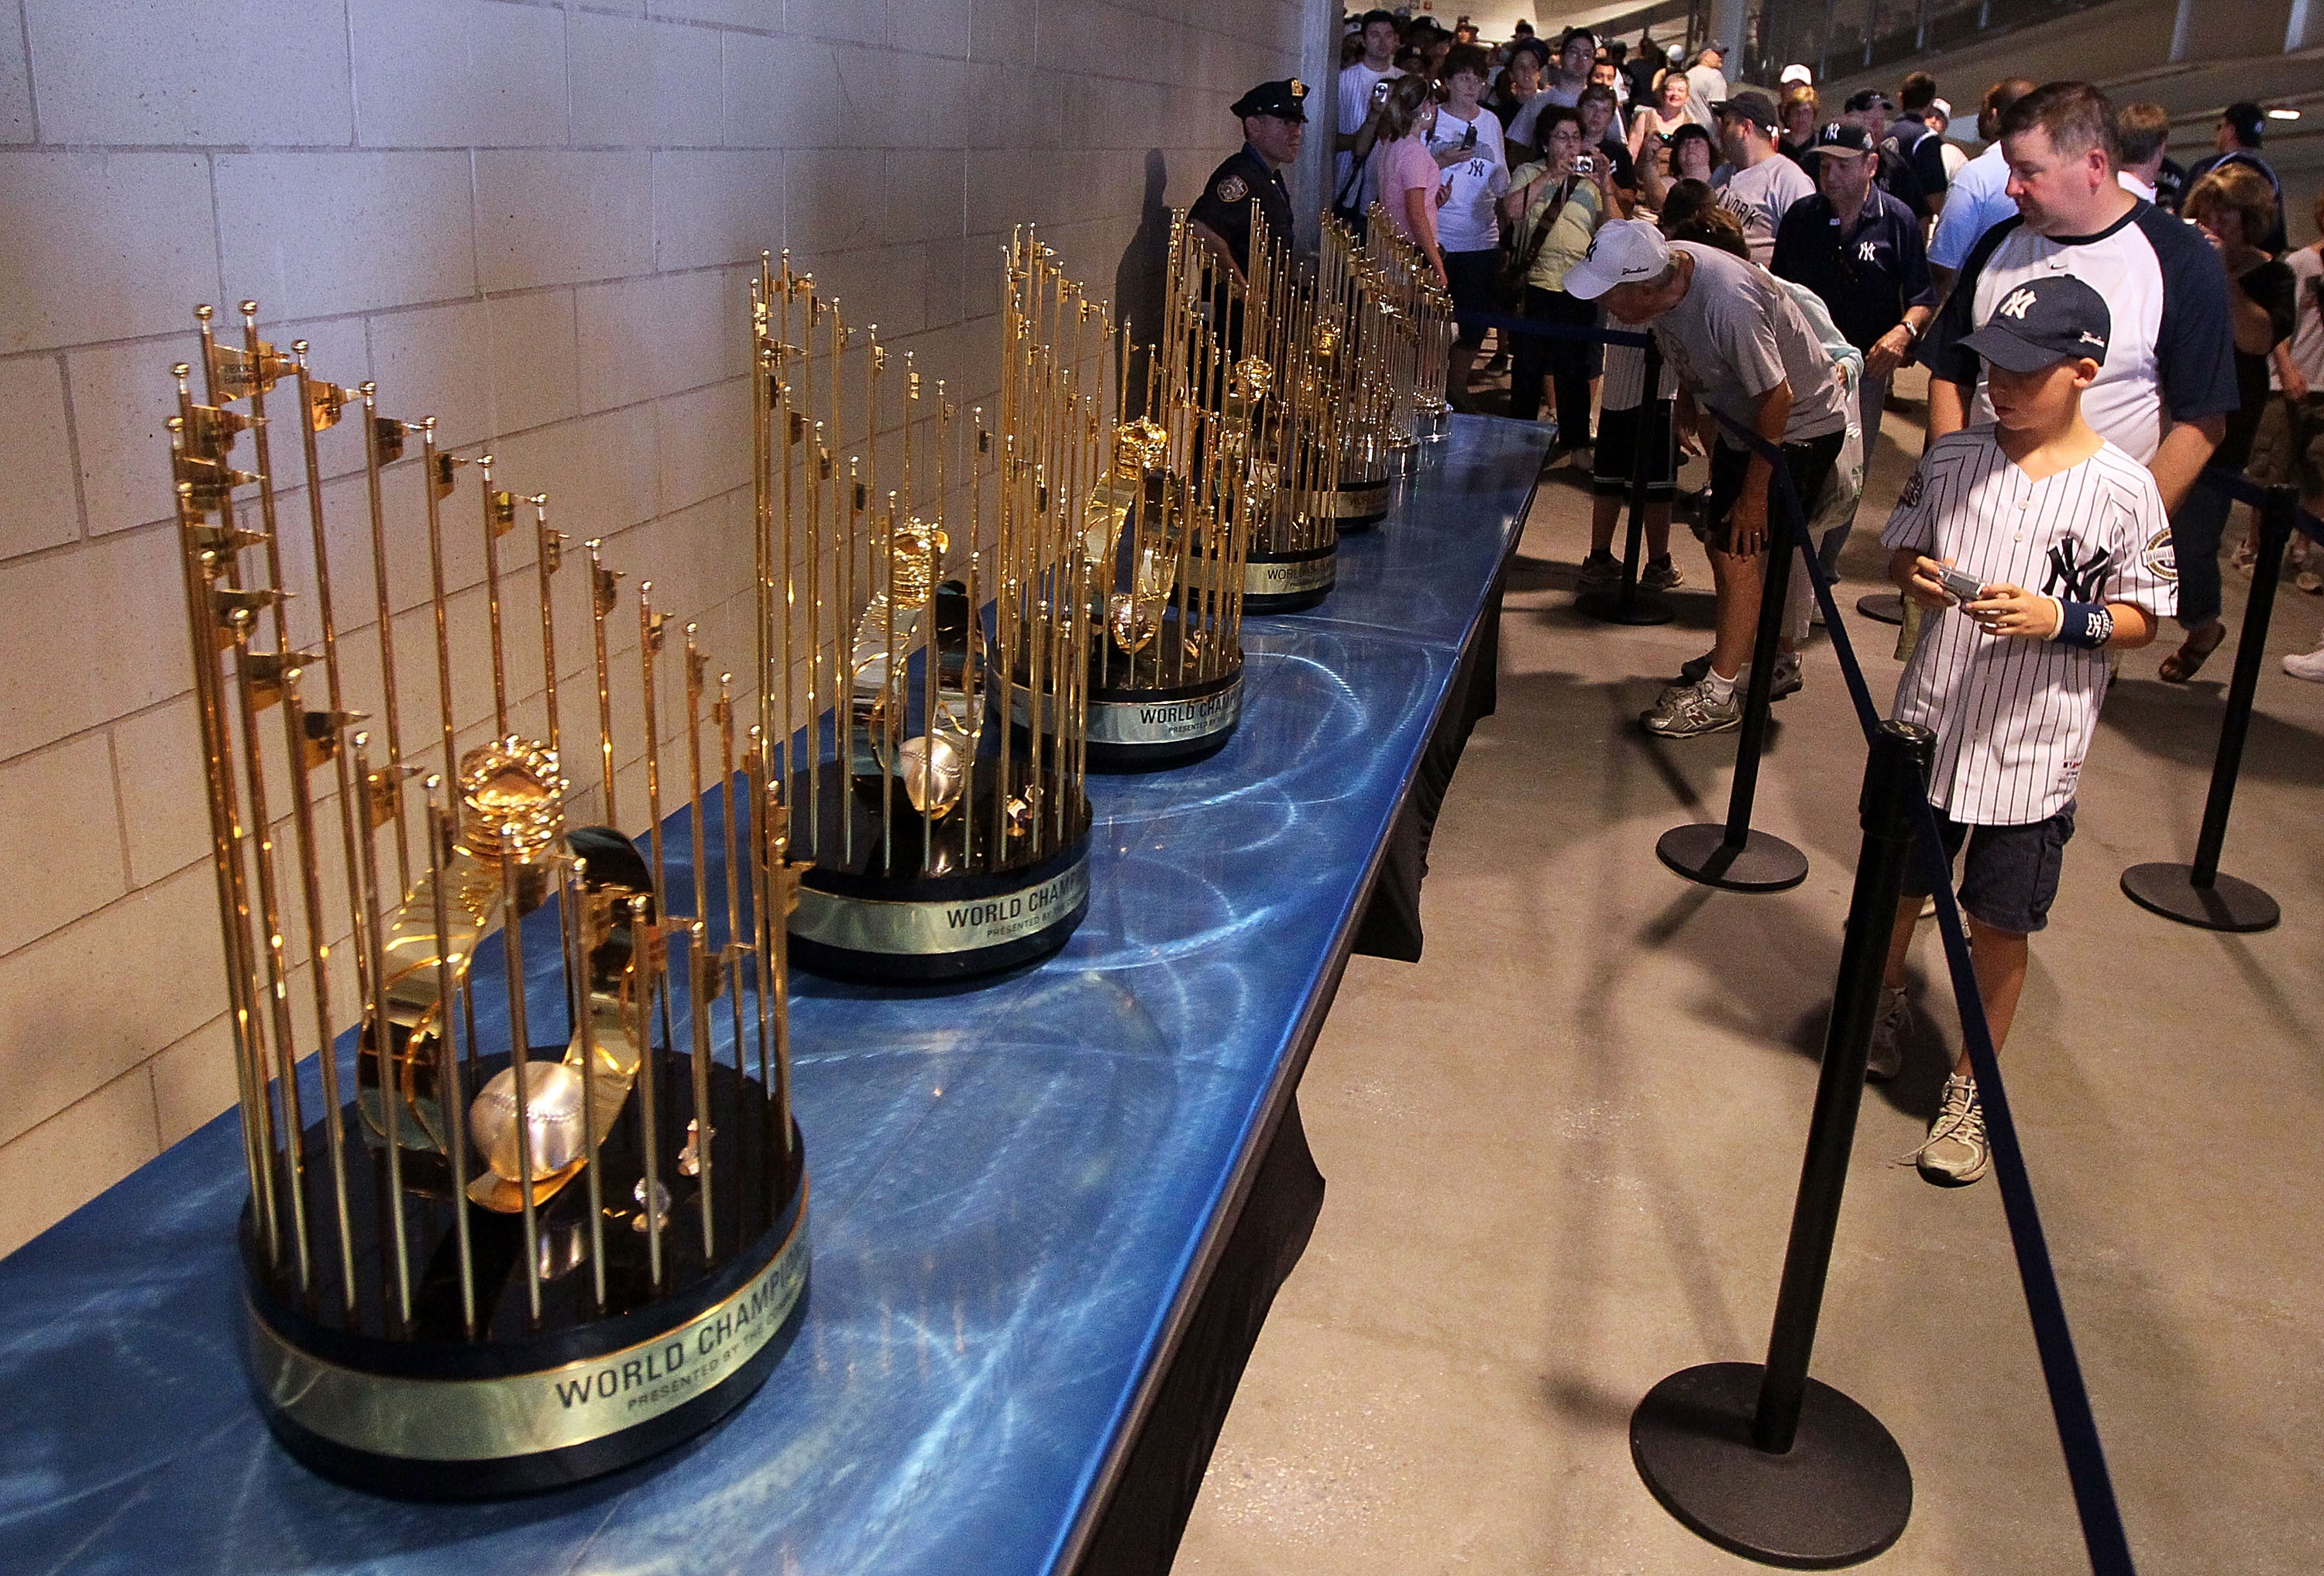 NEW YORK - JULY 04:  Fans photograph the seven World Series championship trophies won by the New York Yankees under the ownership of George Steinbrenner prior to the game against the Toronto Blue Jays on July 4, 2010 at Yankee Stadium in the Bronx borough